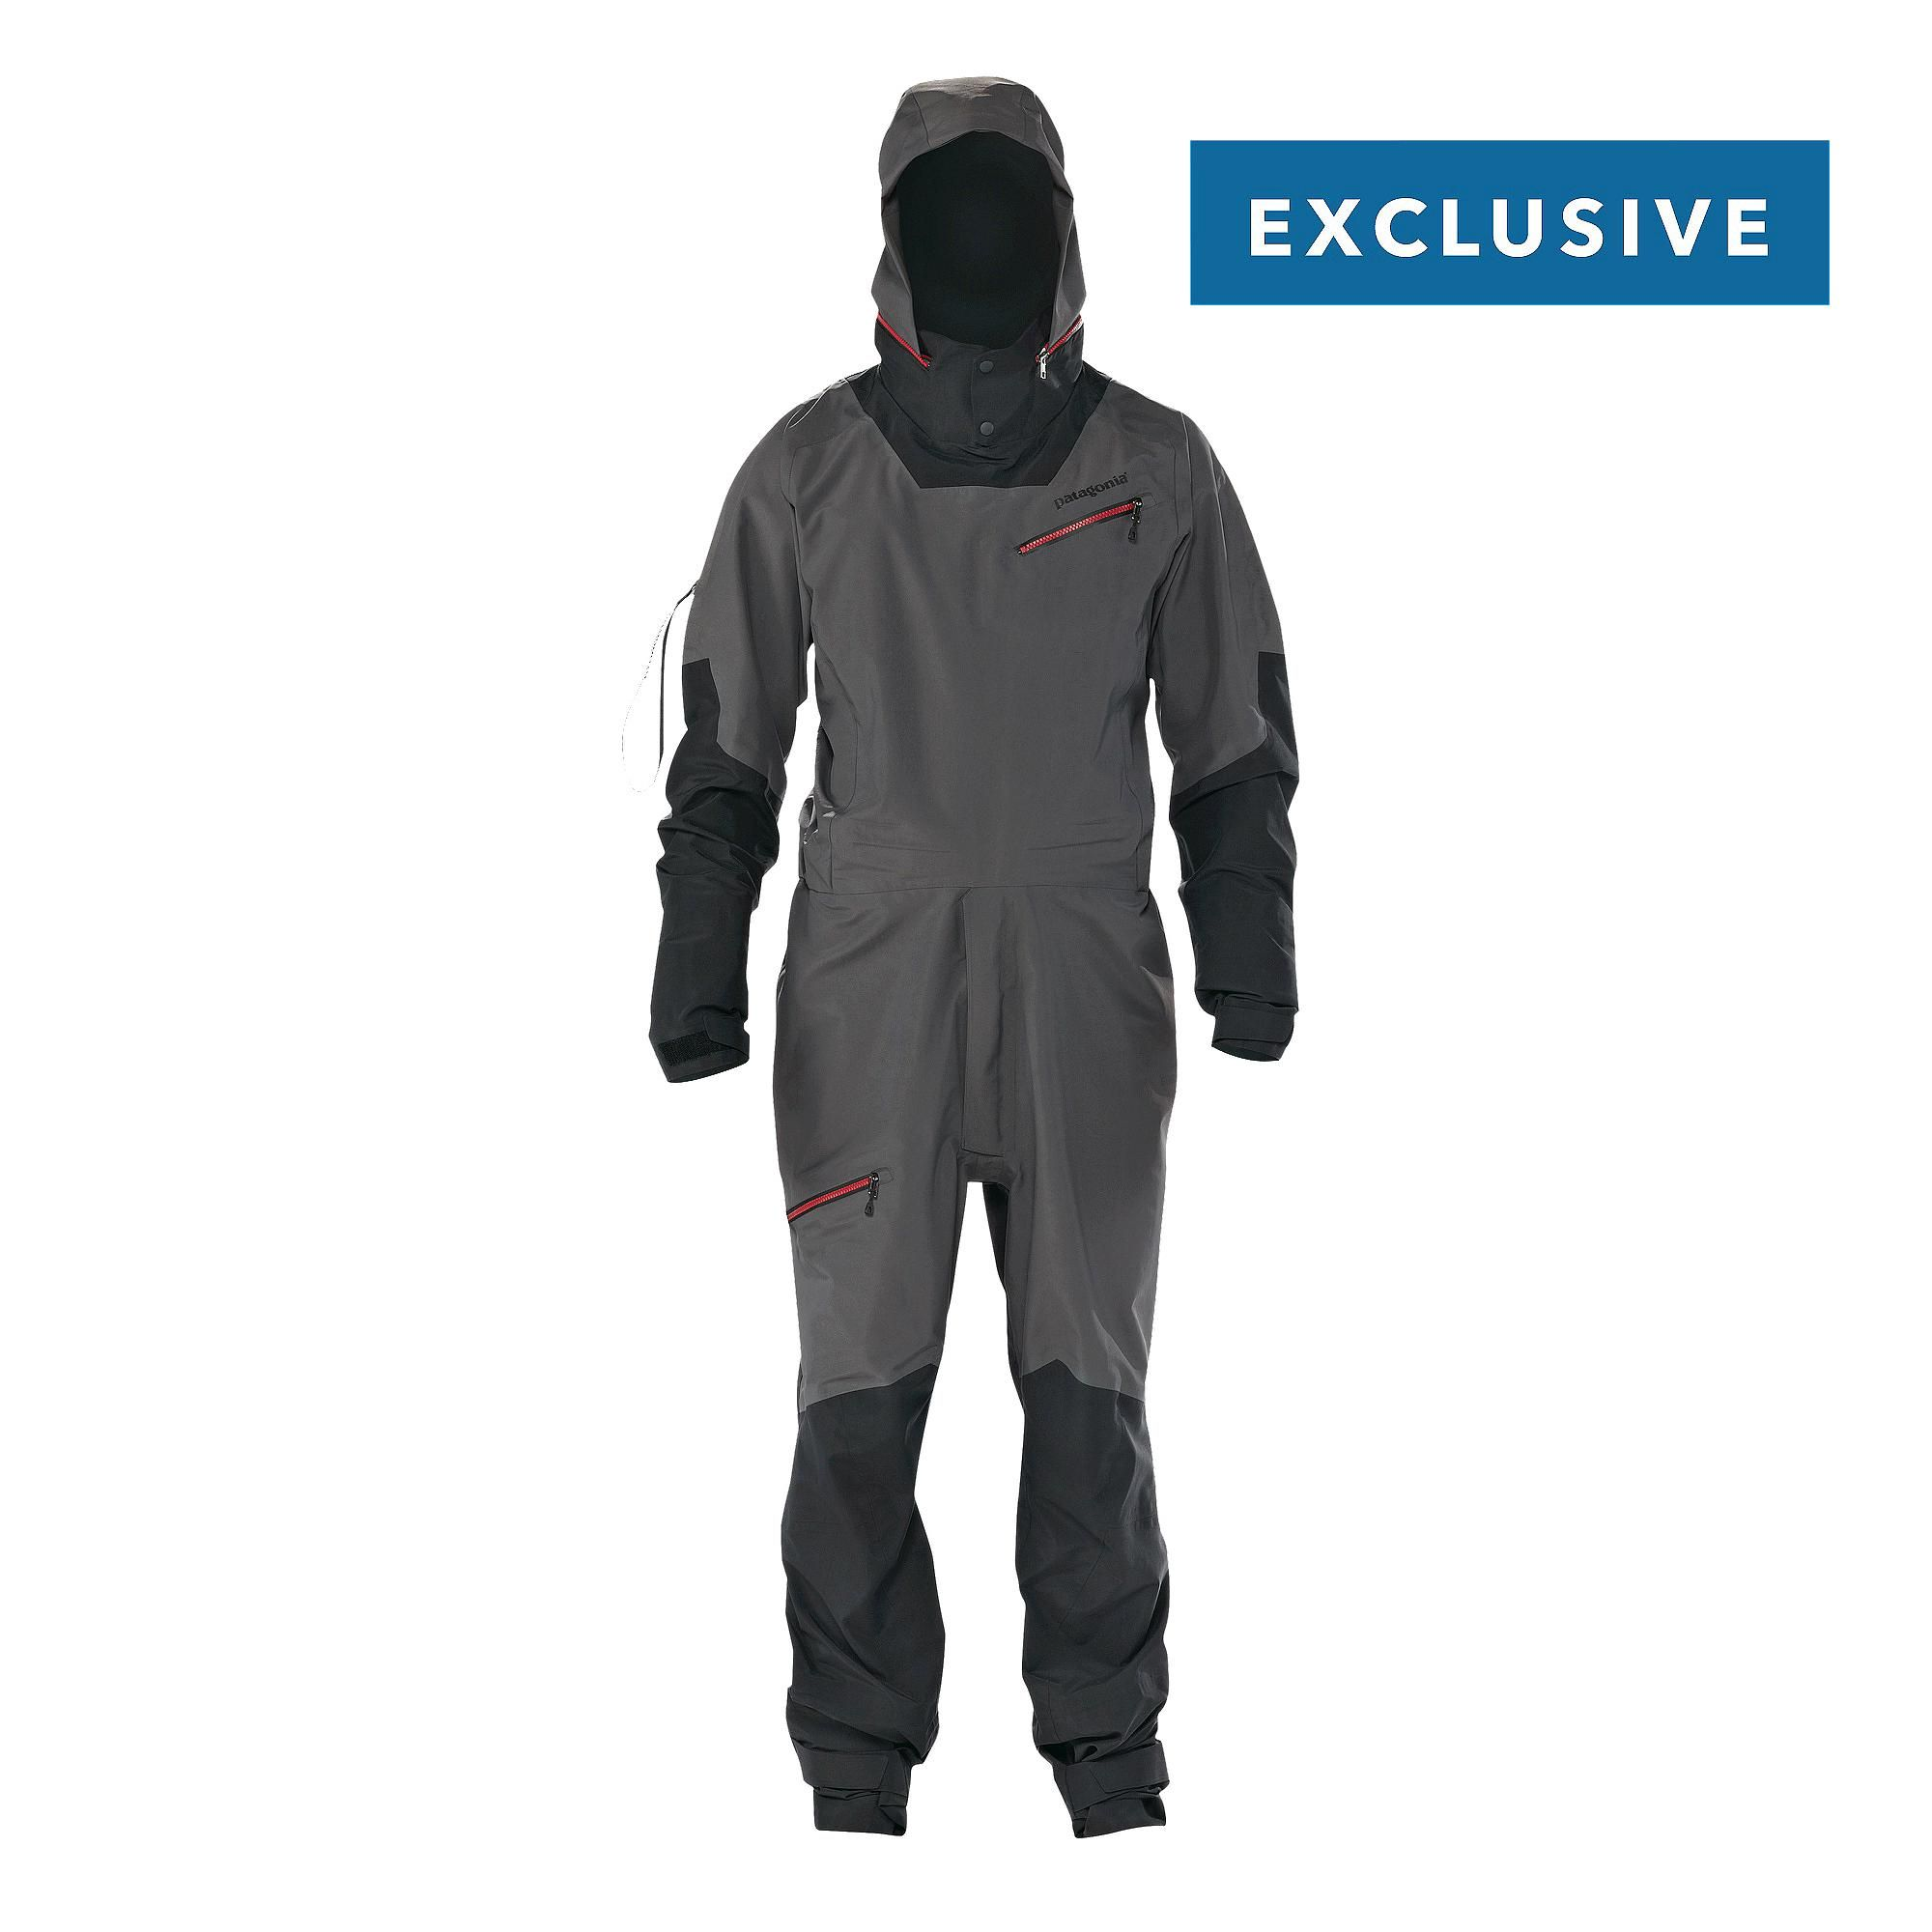 Patagonia GORE TEX® Kiting Suit Made with durably